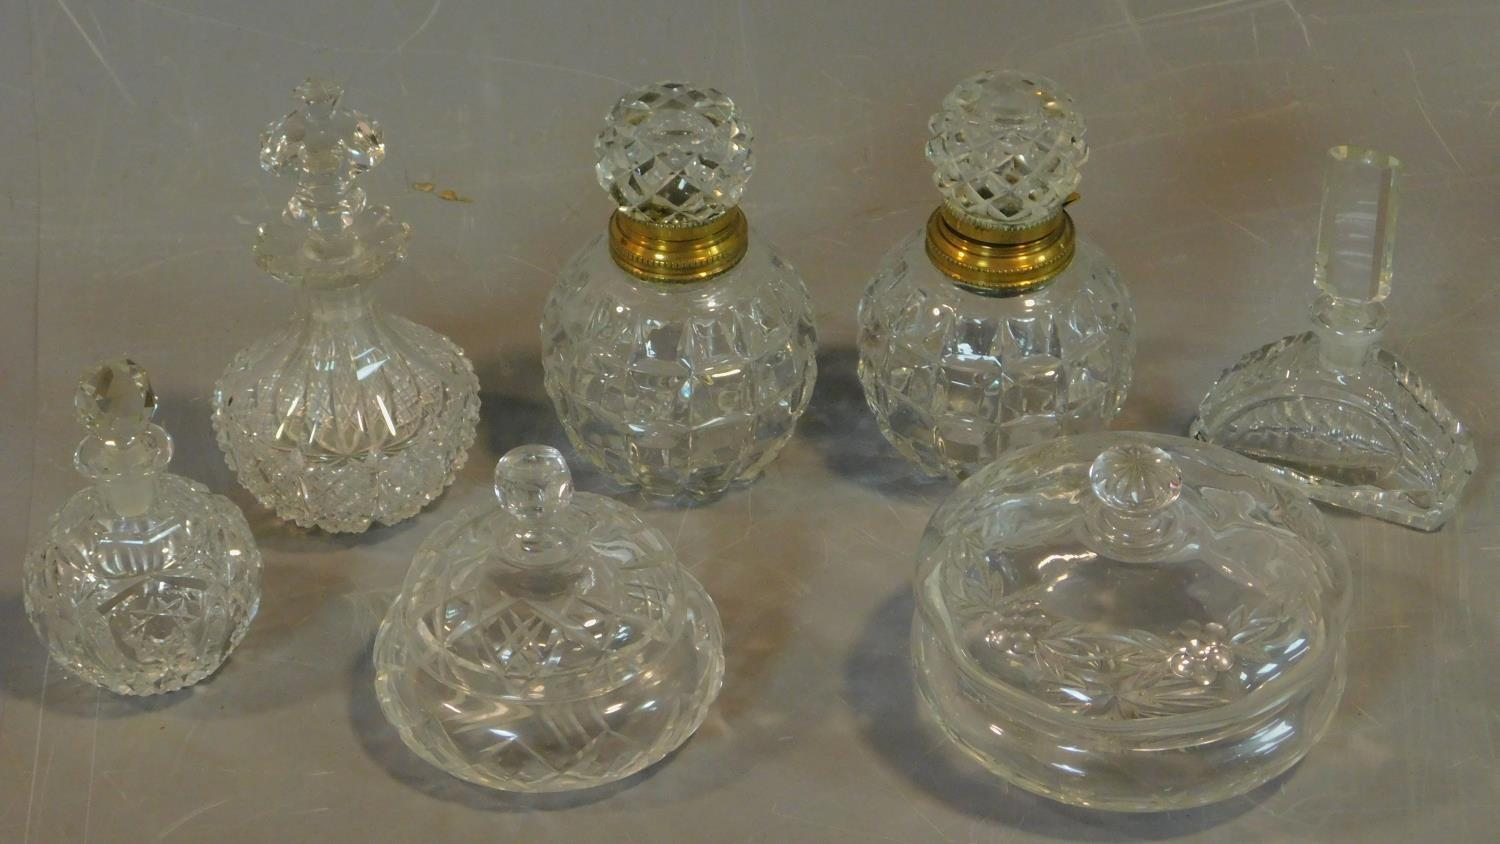 A pair of cut crystal scent bottles with gilt metal collars and a collection of other similar items.